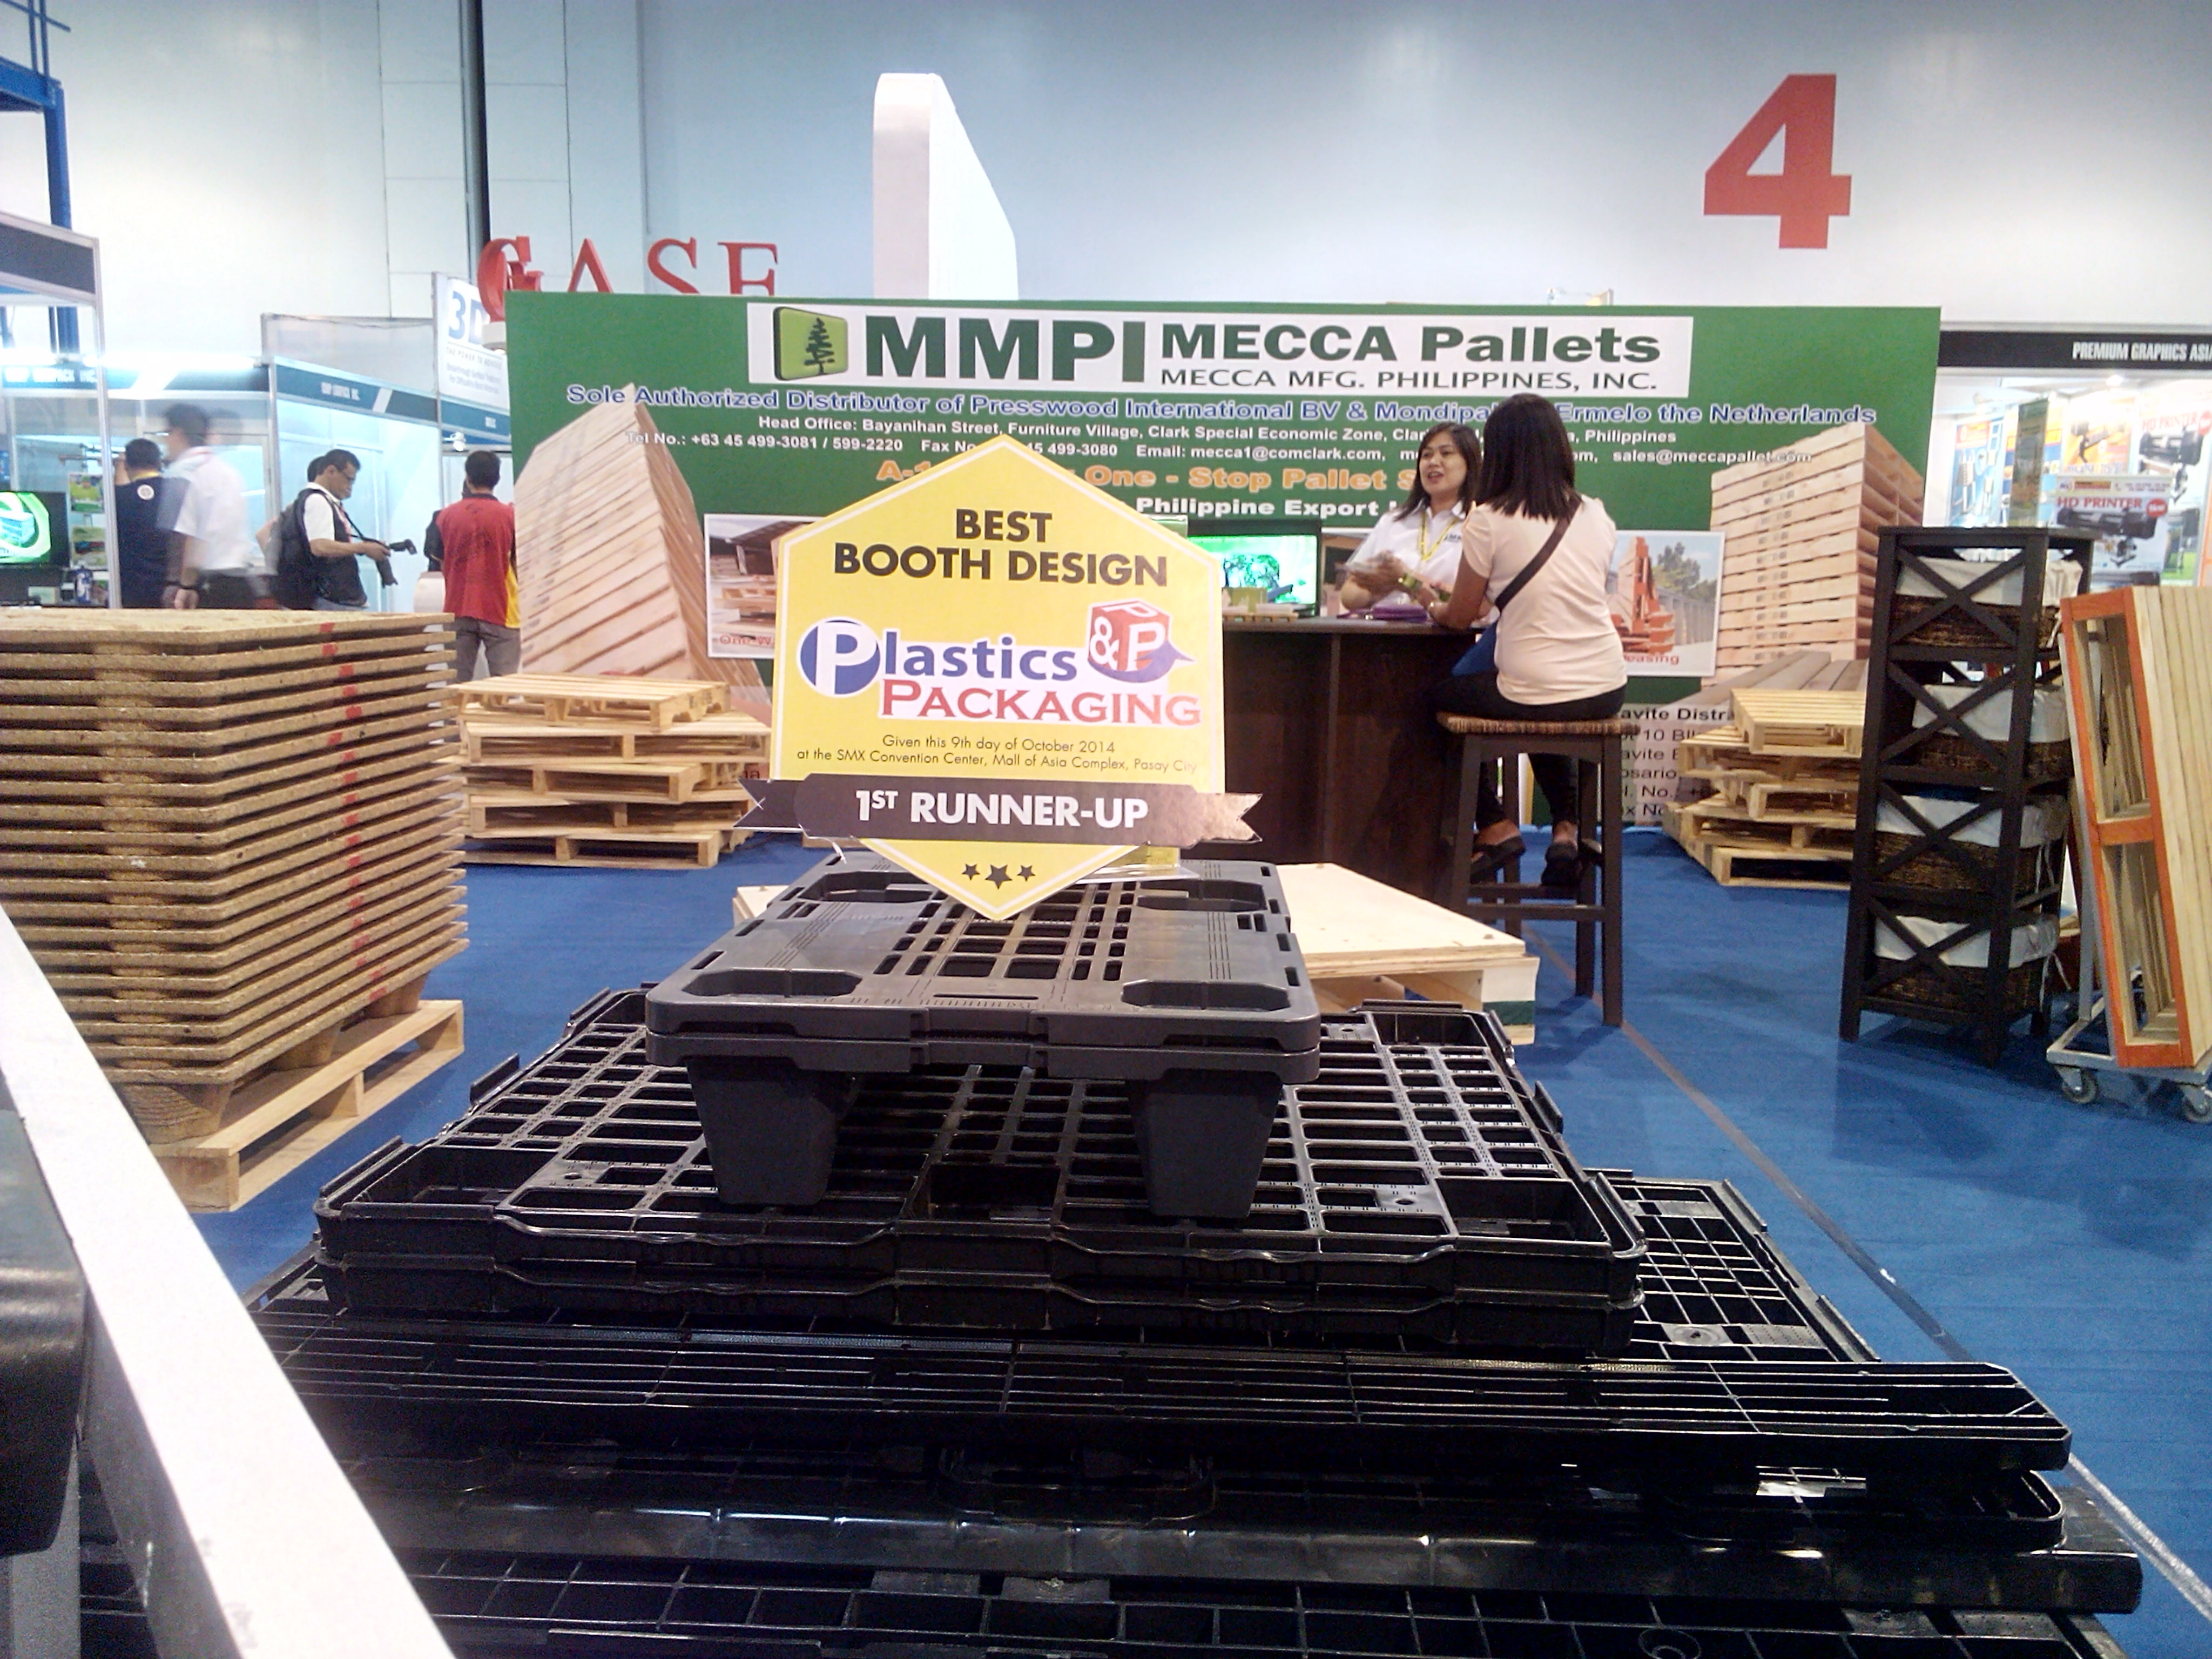 PLASTIC & PACKAGING BEST BOOTH DESIGN